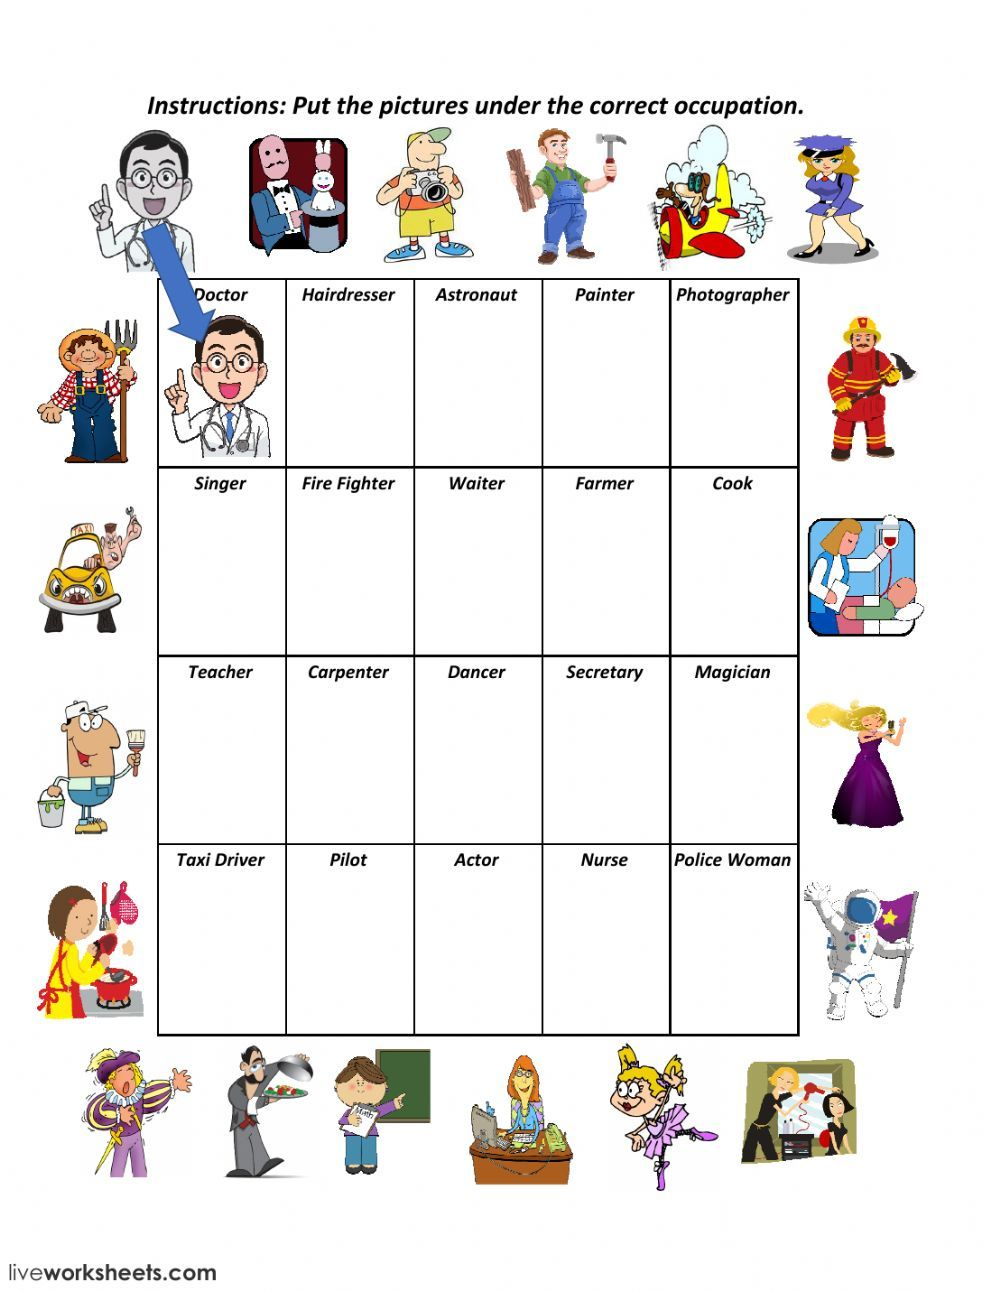 Jobs And Occupations Online Worksheet You Can Do The Exercises Online Or Download The Workshee Kindergarten Worksheets English Lessons For Kids Preschool Jobs [ 1291 x 1000 Pixel ]